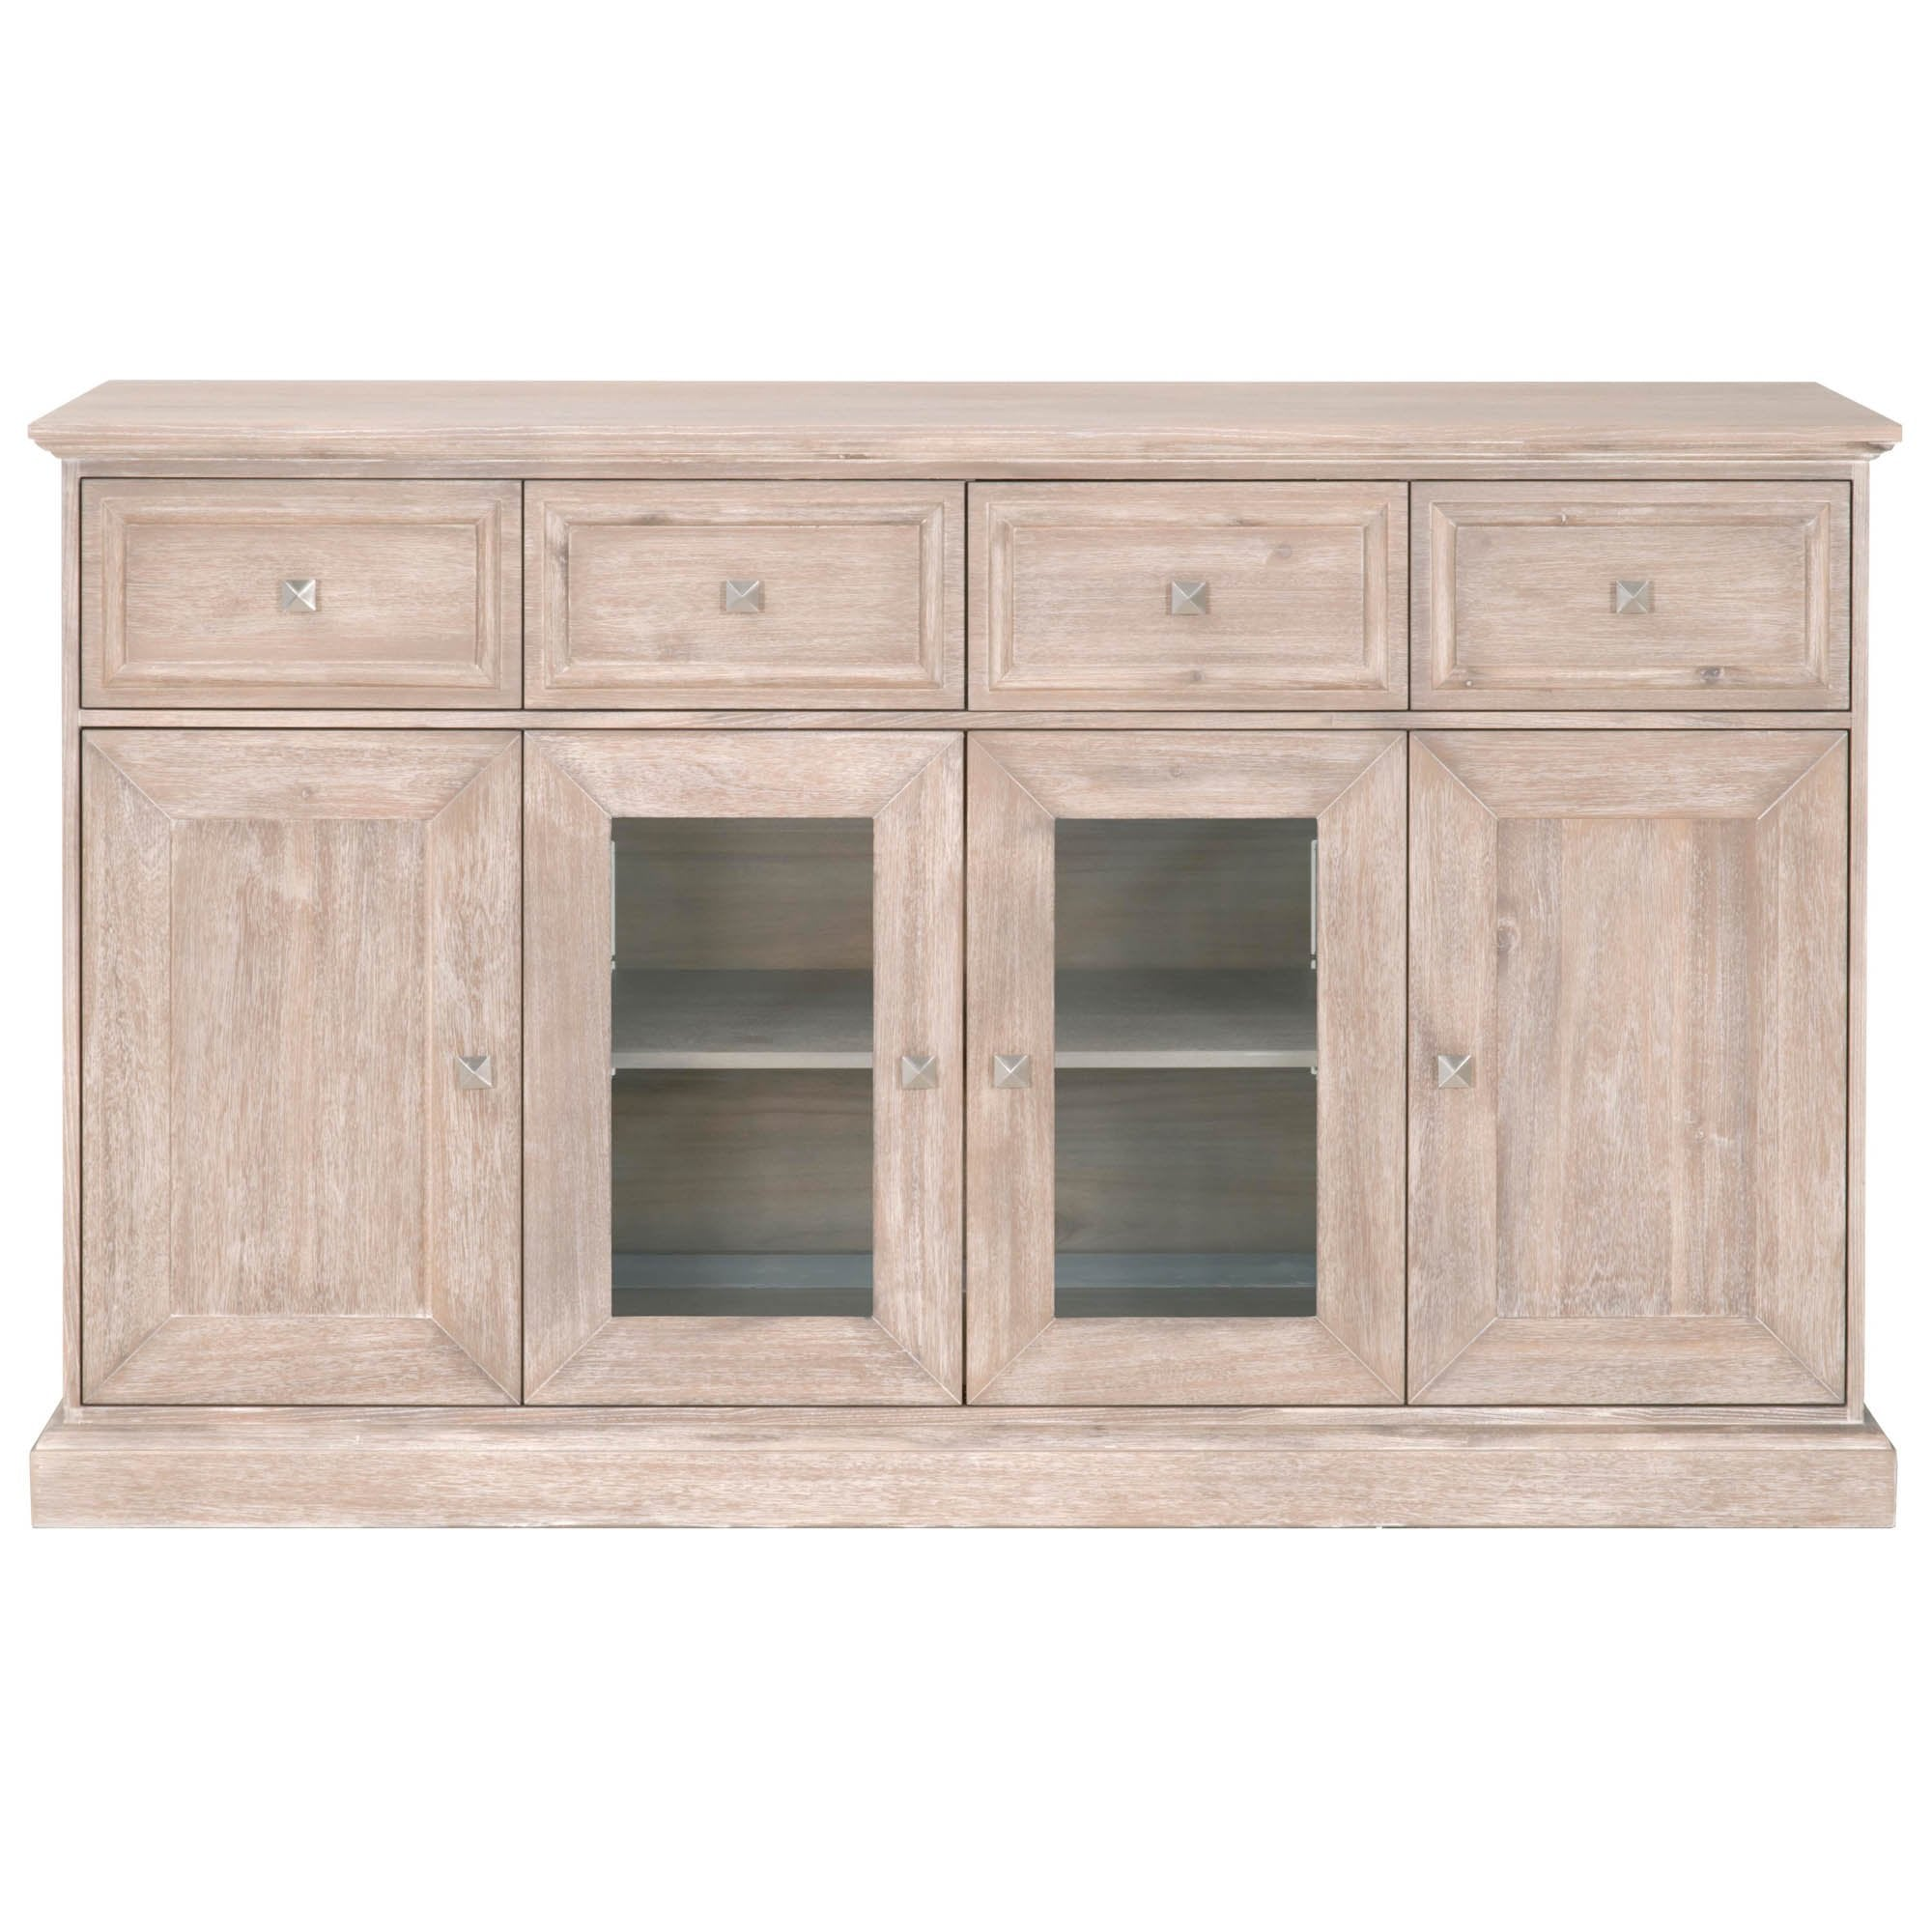 Hudson Media Sideboard in Acacia Veneer